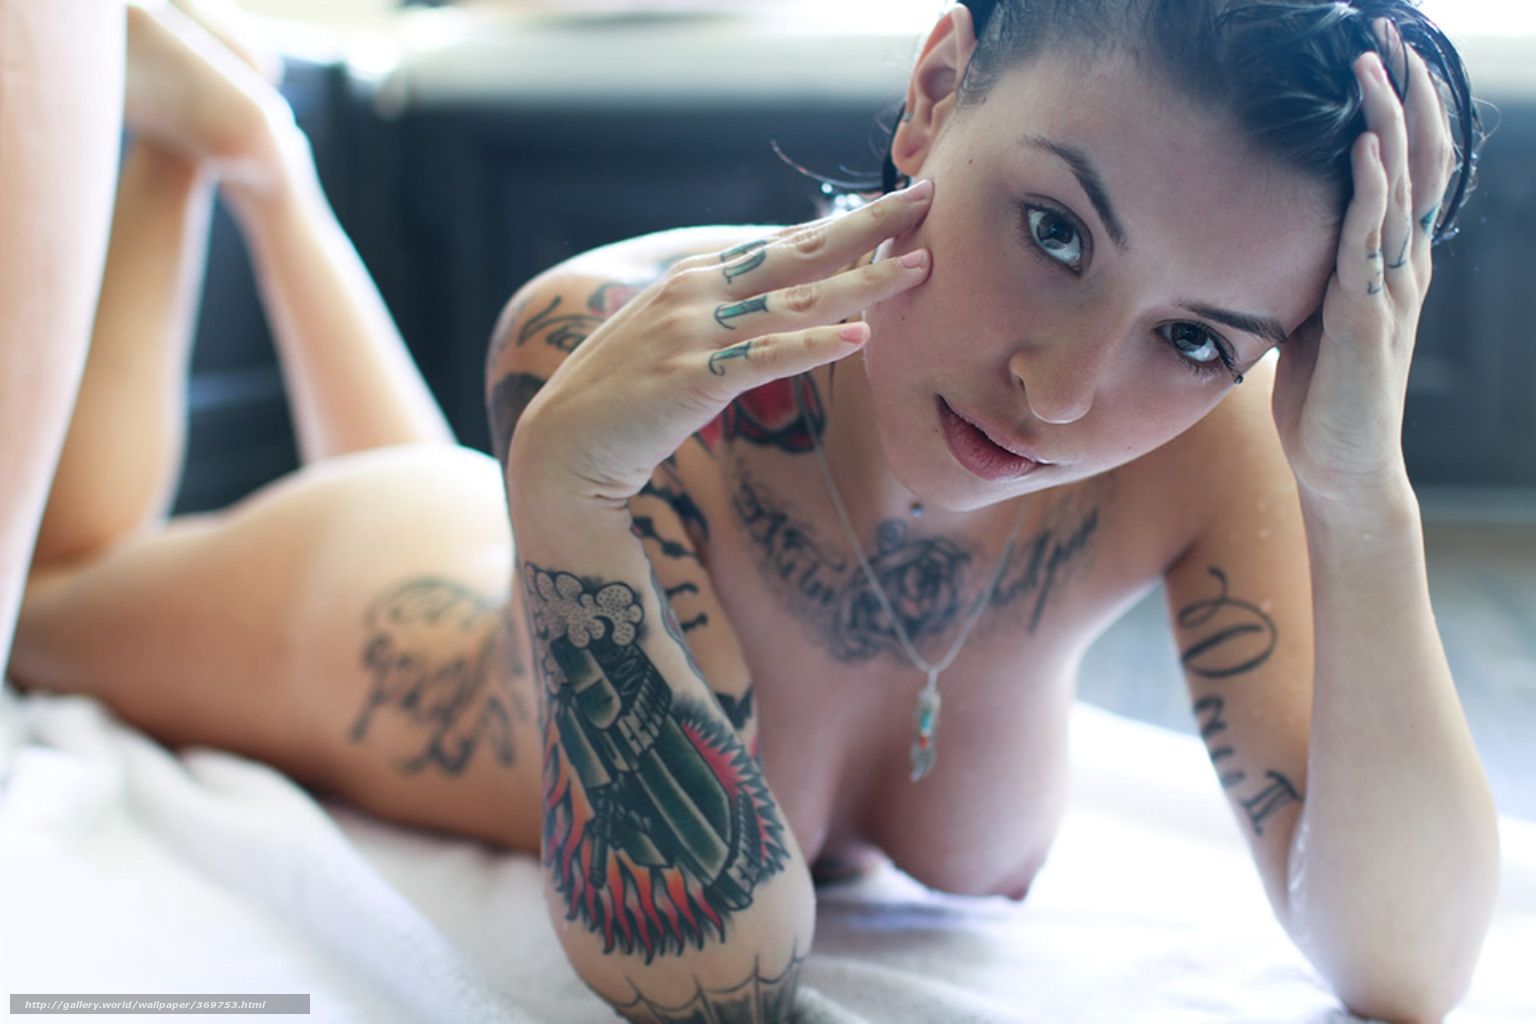 tattoos with nude Hot girls